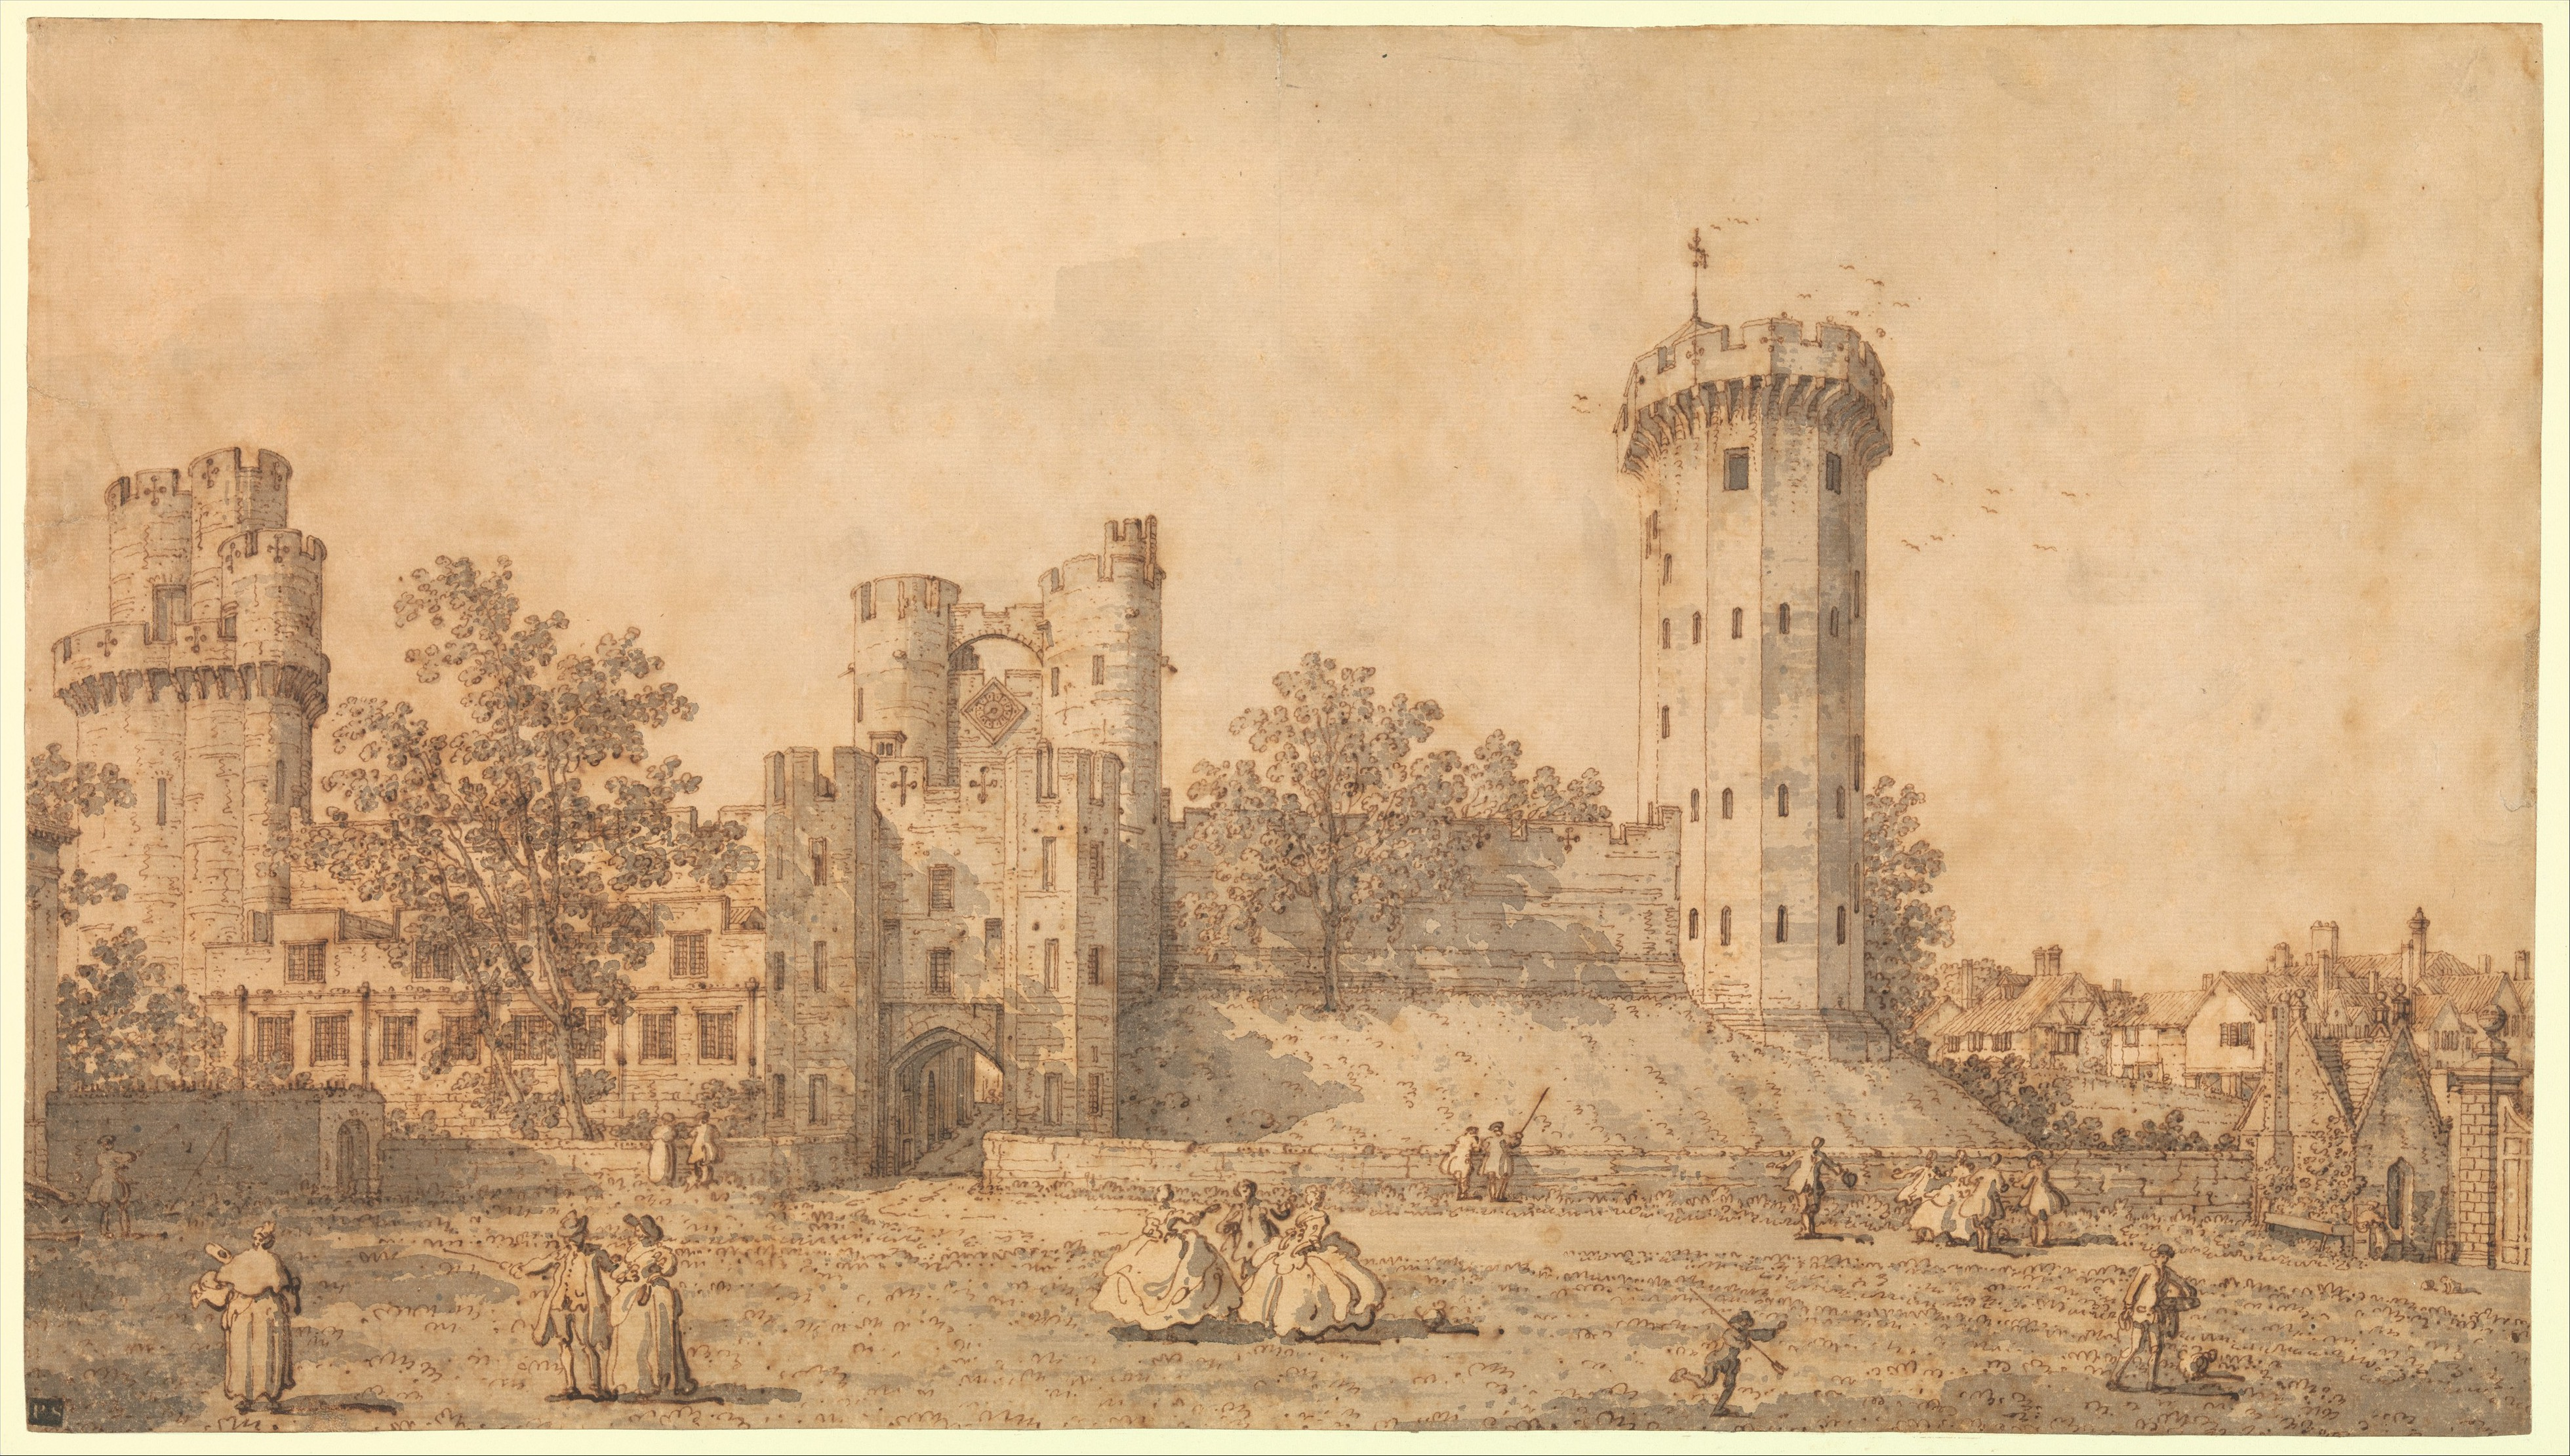 file:warwick castle- the east front met dp358985 - wikimedia